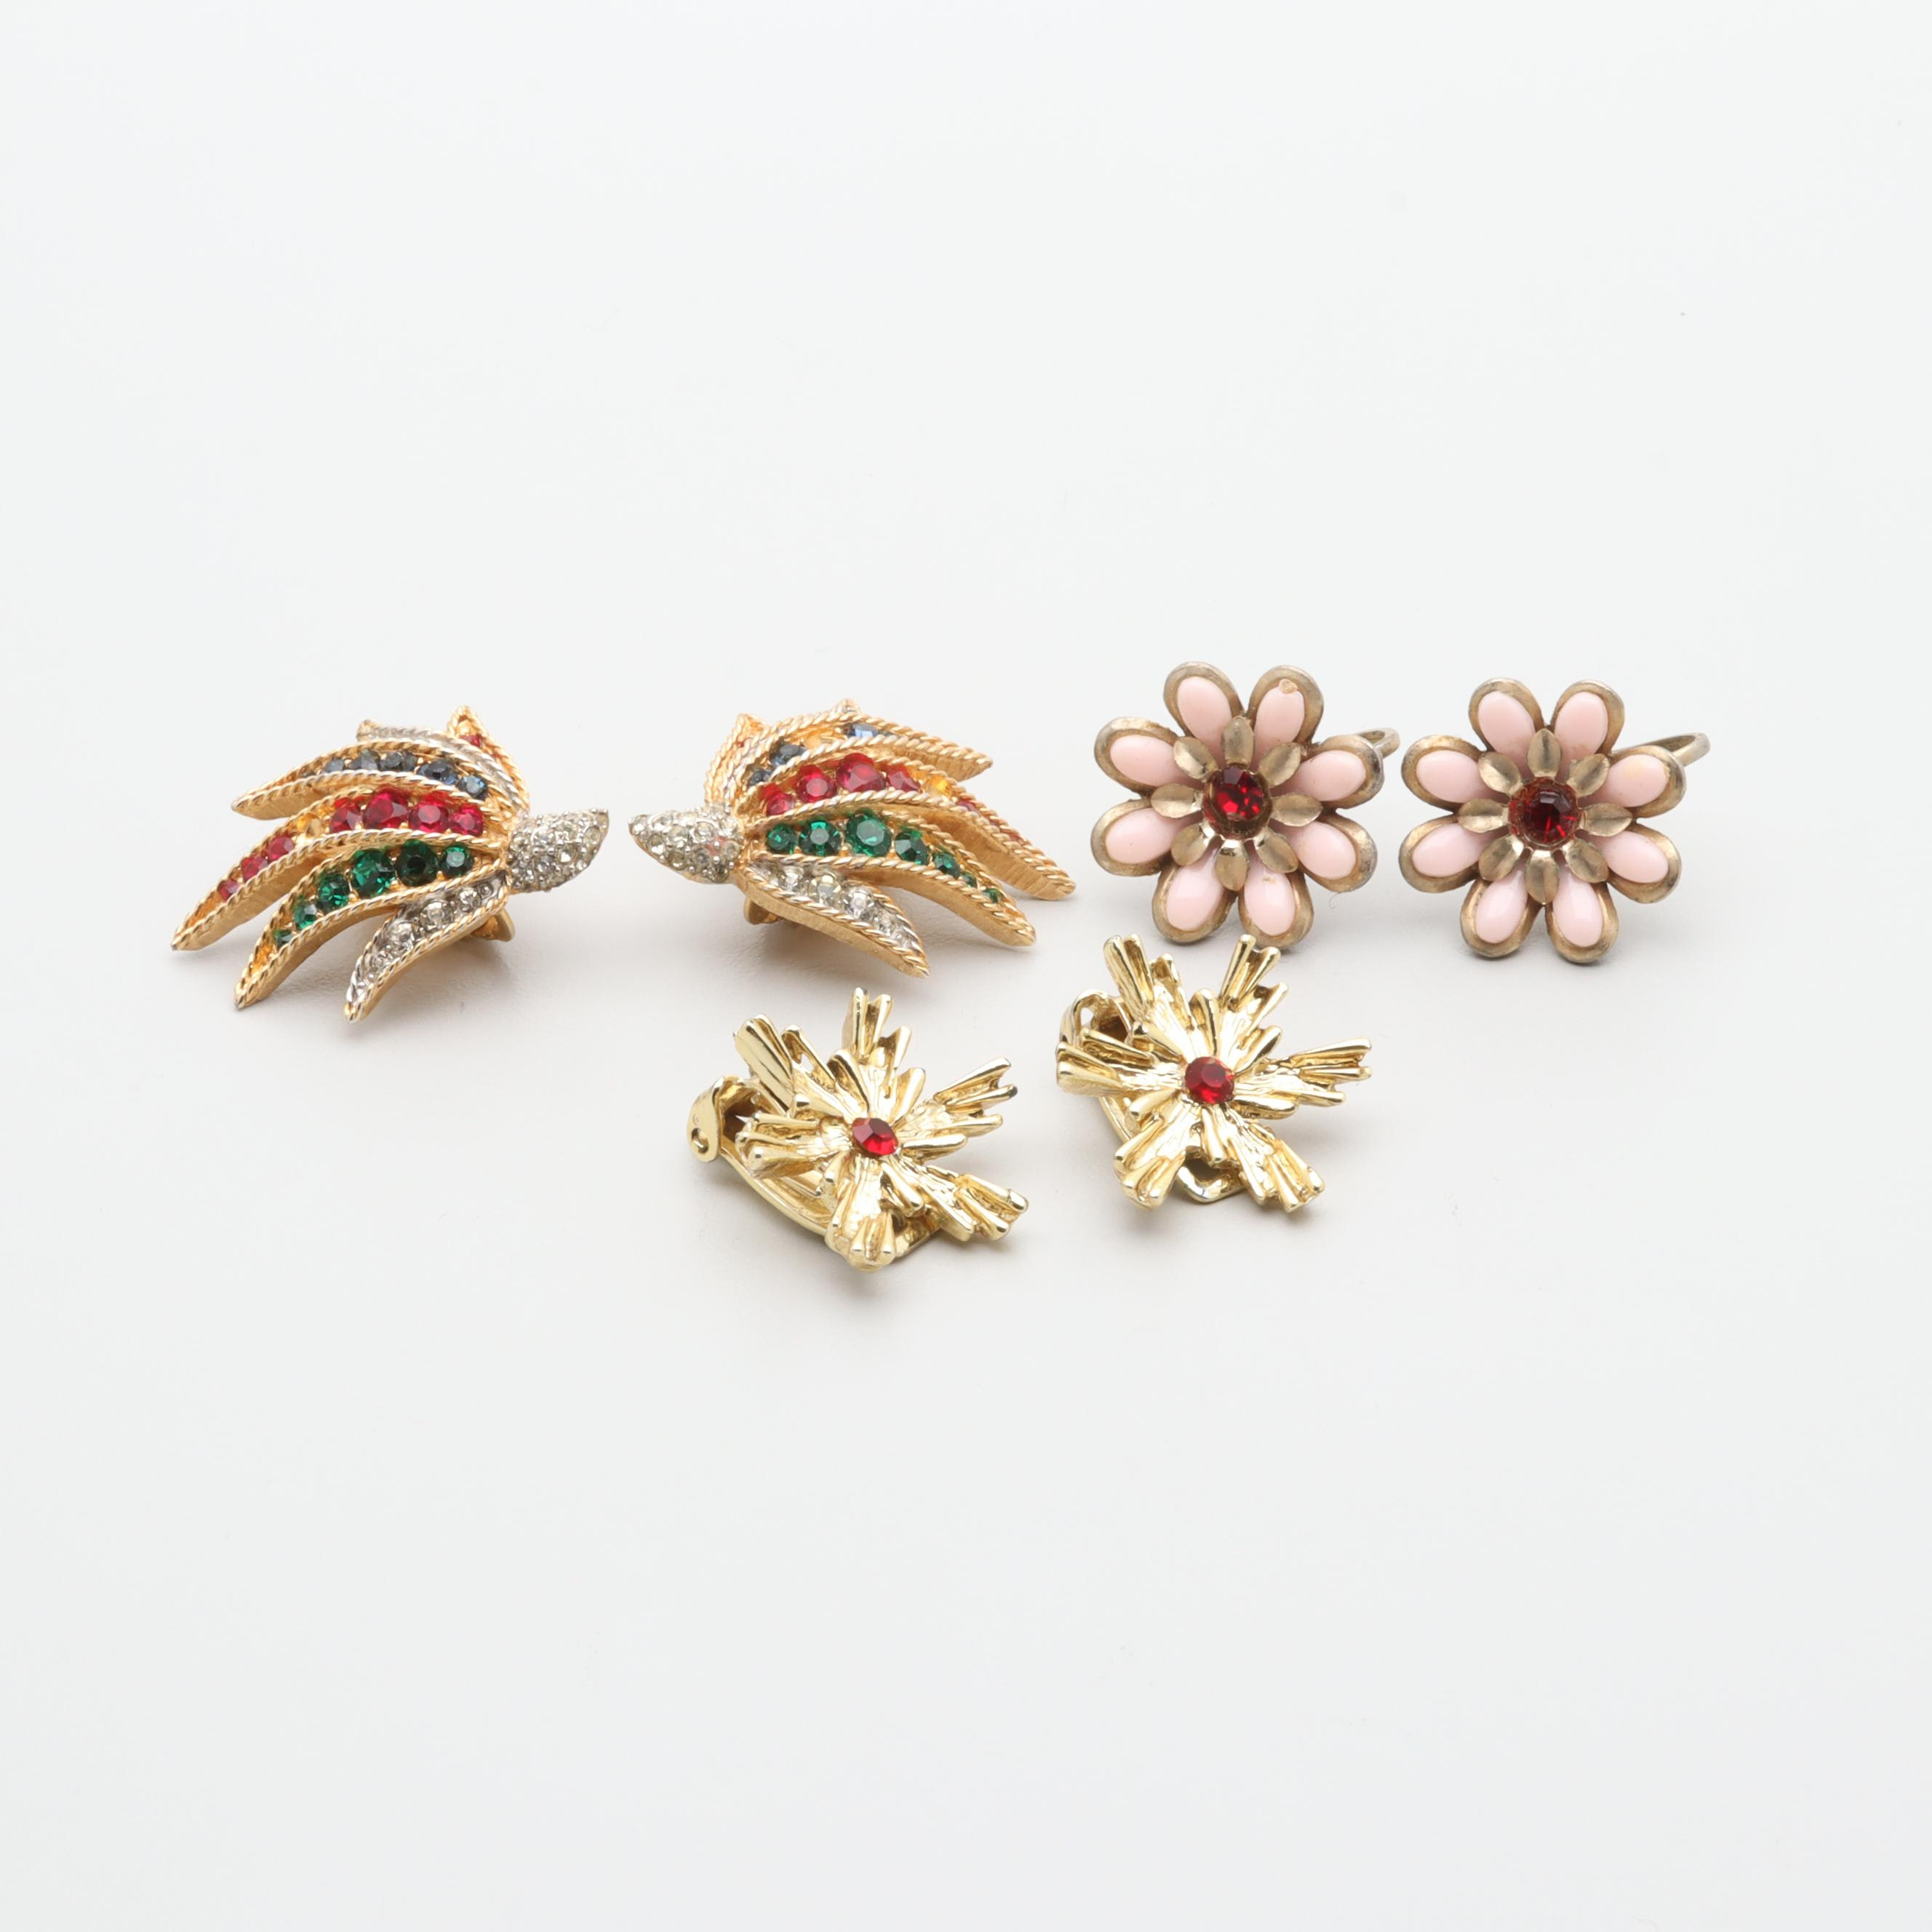 Vintage Gold Tone Foilback and Plastic Earring Selection